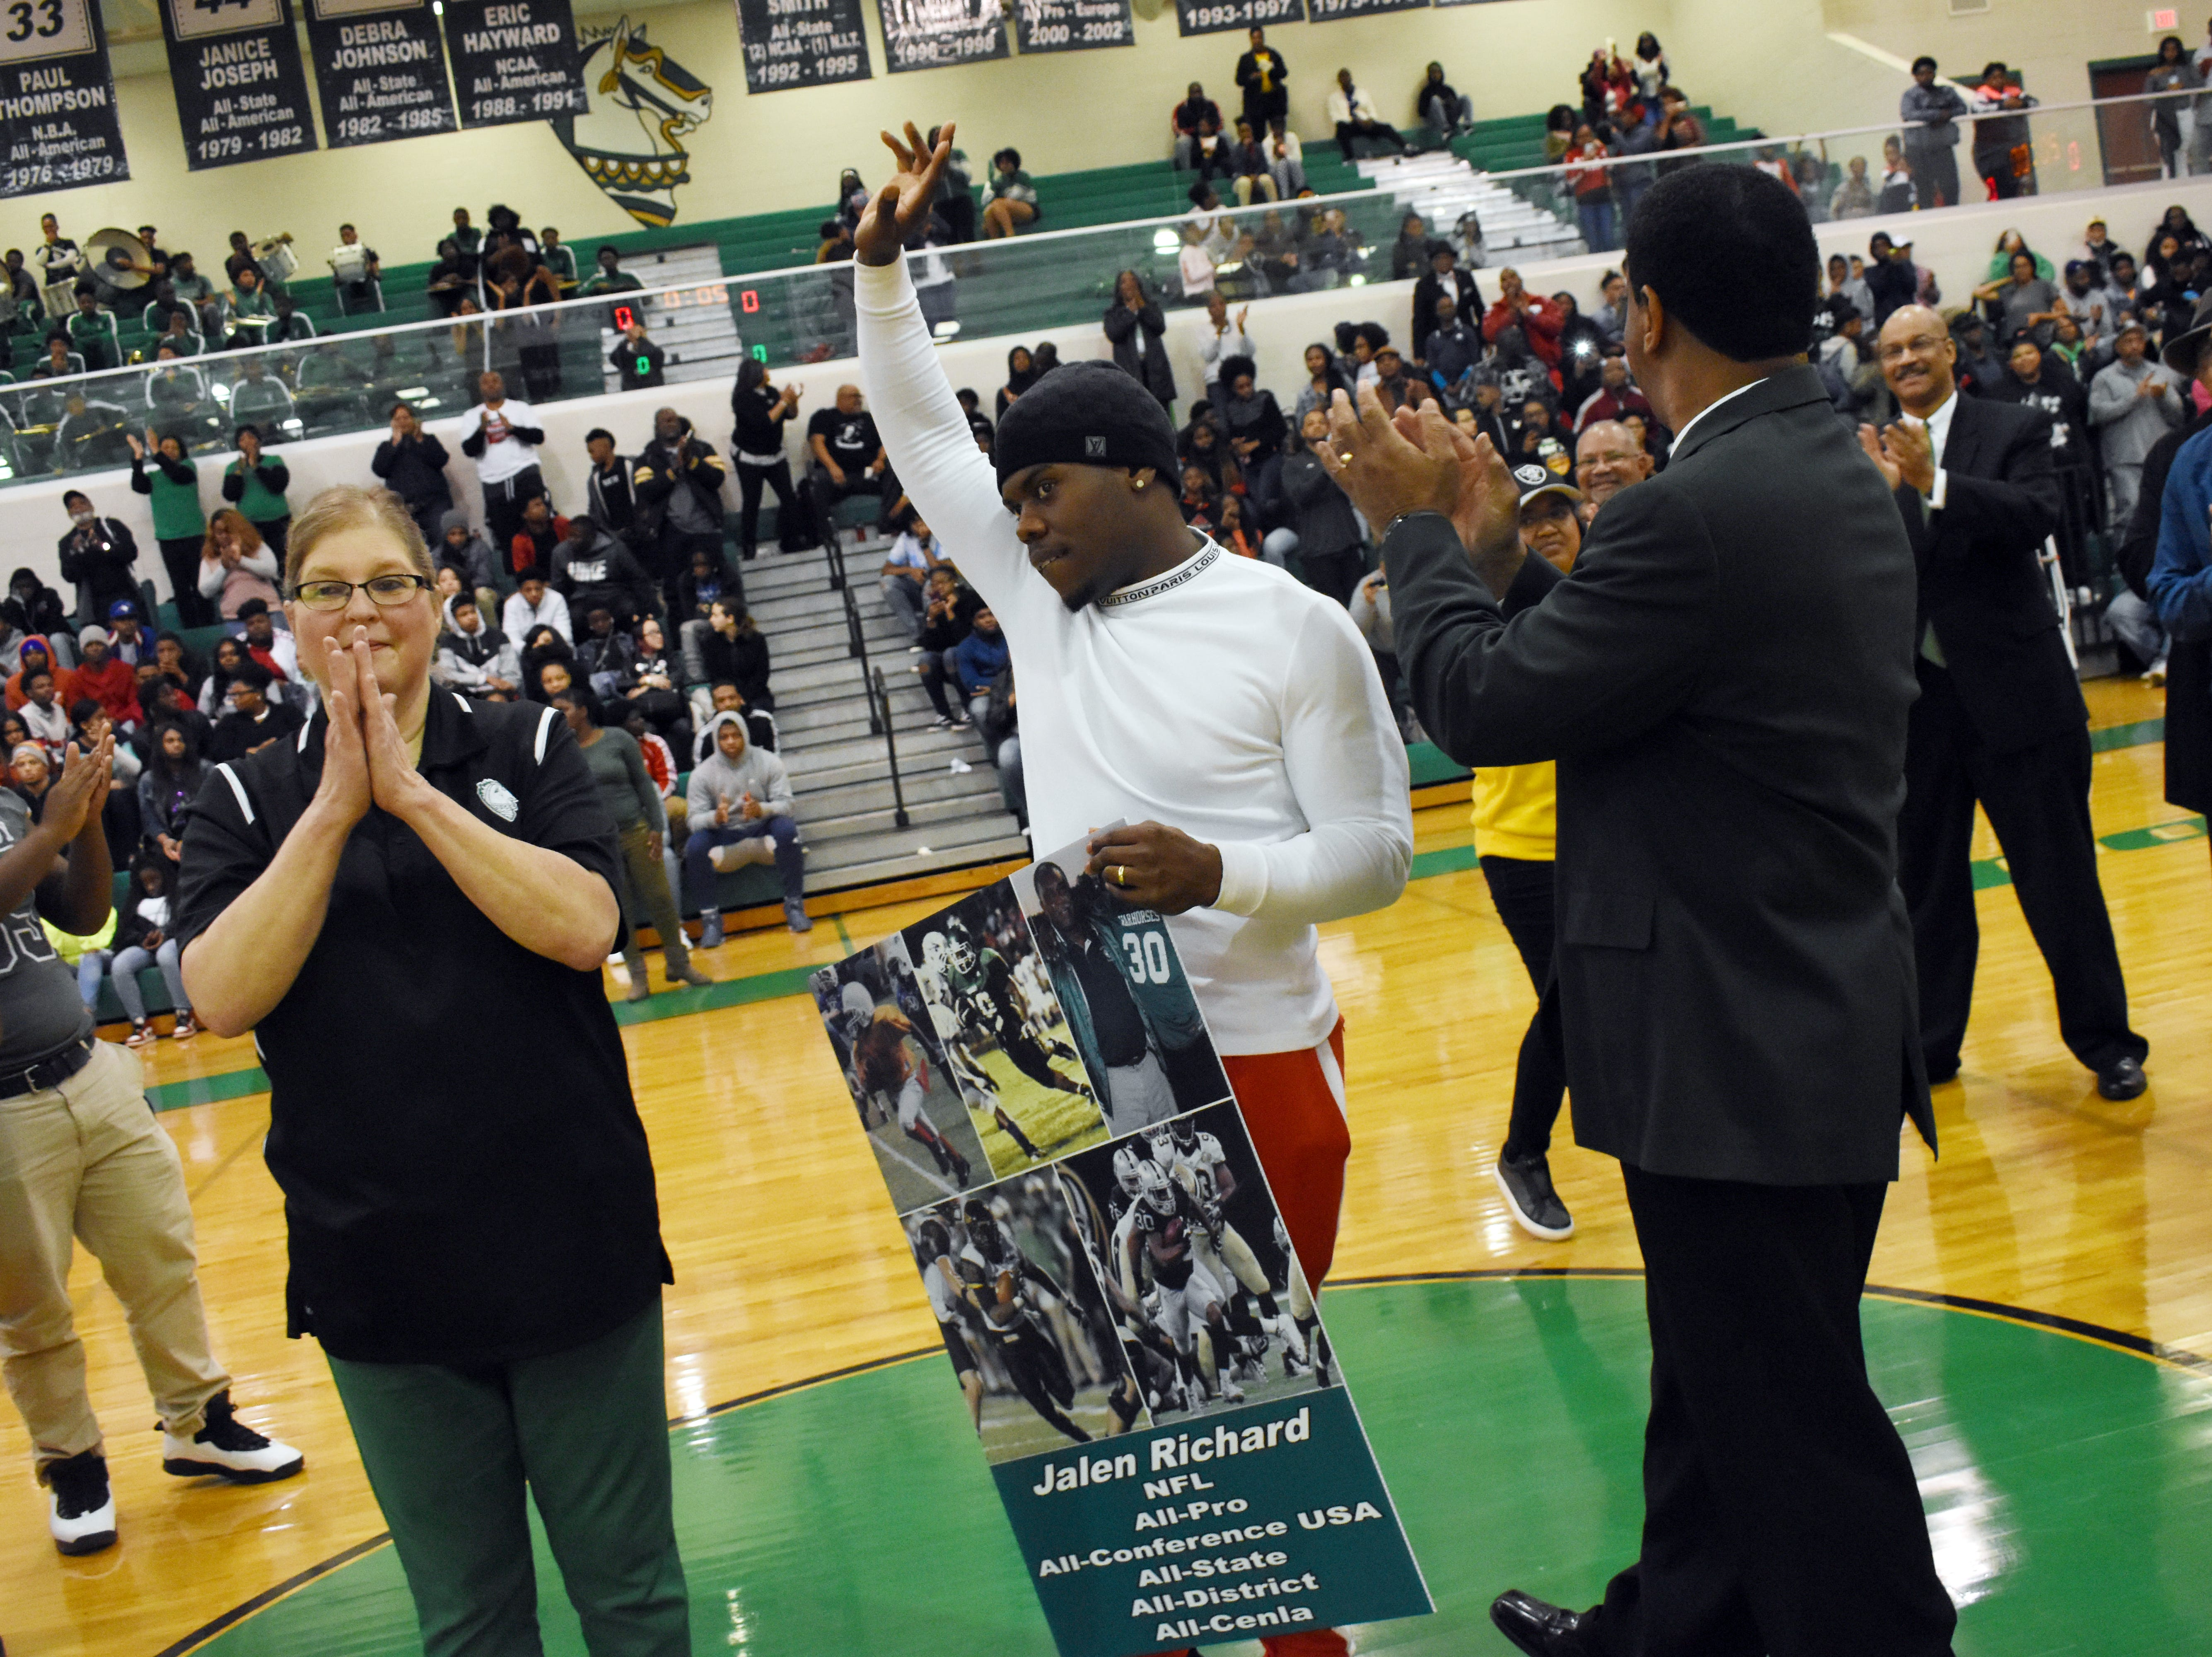 Oakland Raiders running back Jalen Richard (center) watches as a banner is raised retiring his jersey at Peabody Magnet High School where he graduated in 2012. With Richard are Peabody principal Jamie Henagan (left) and Peabody athletic director and head basketball coach Charles Smith (right). Richard's jersey was retired in a ceremony Friday, Jan. 25,2019 at Peabody Magnet High School. While at Peabody, Richard made the LSWA Class 4A All-State first team as a junior, and the All-Cenla and All-District first teams as a sophomore and a junior. Richard graduated from the University of Southern Mississippi in 2016. Richard signed a contract with the Raiders in 2016 after being invited to attend a rookie minicamp.